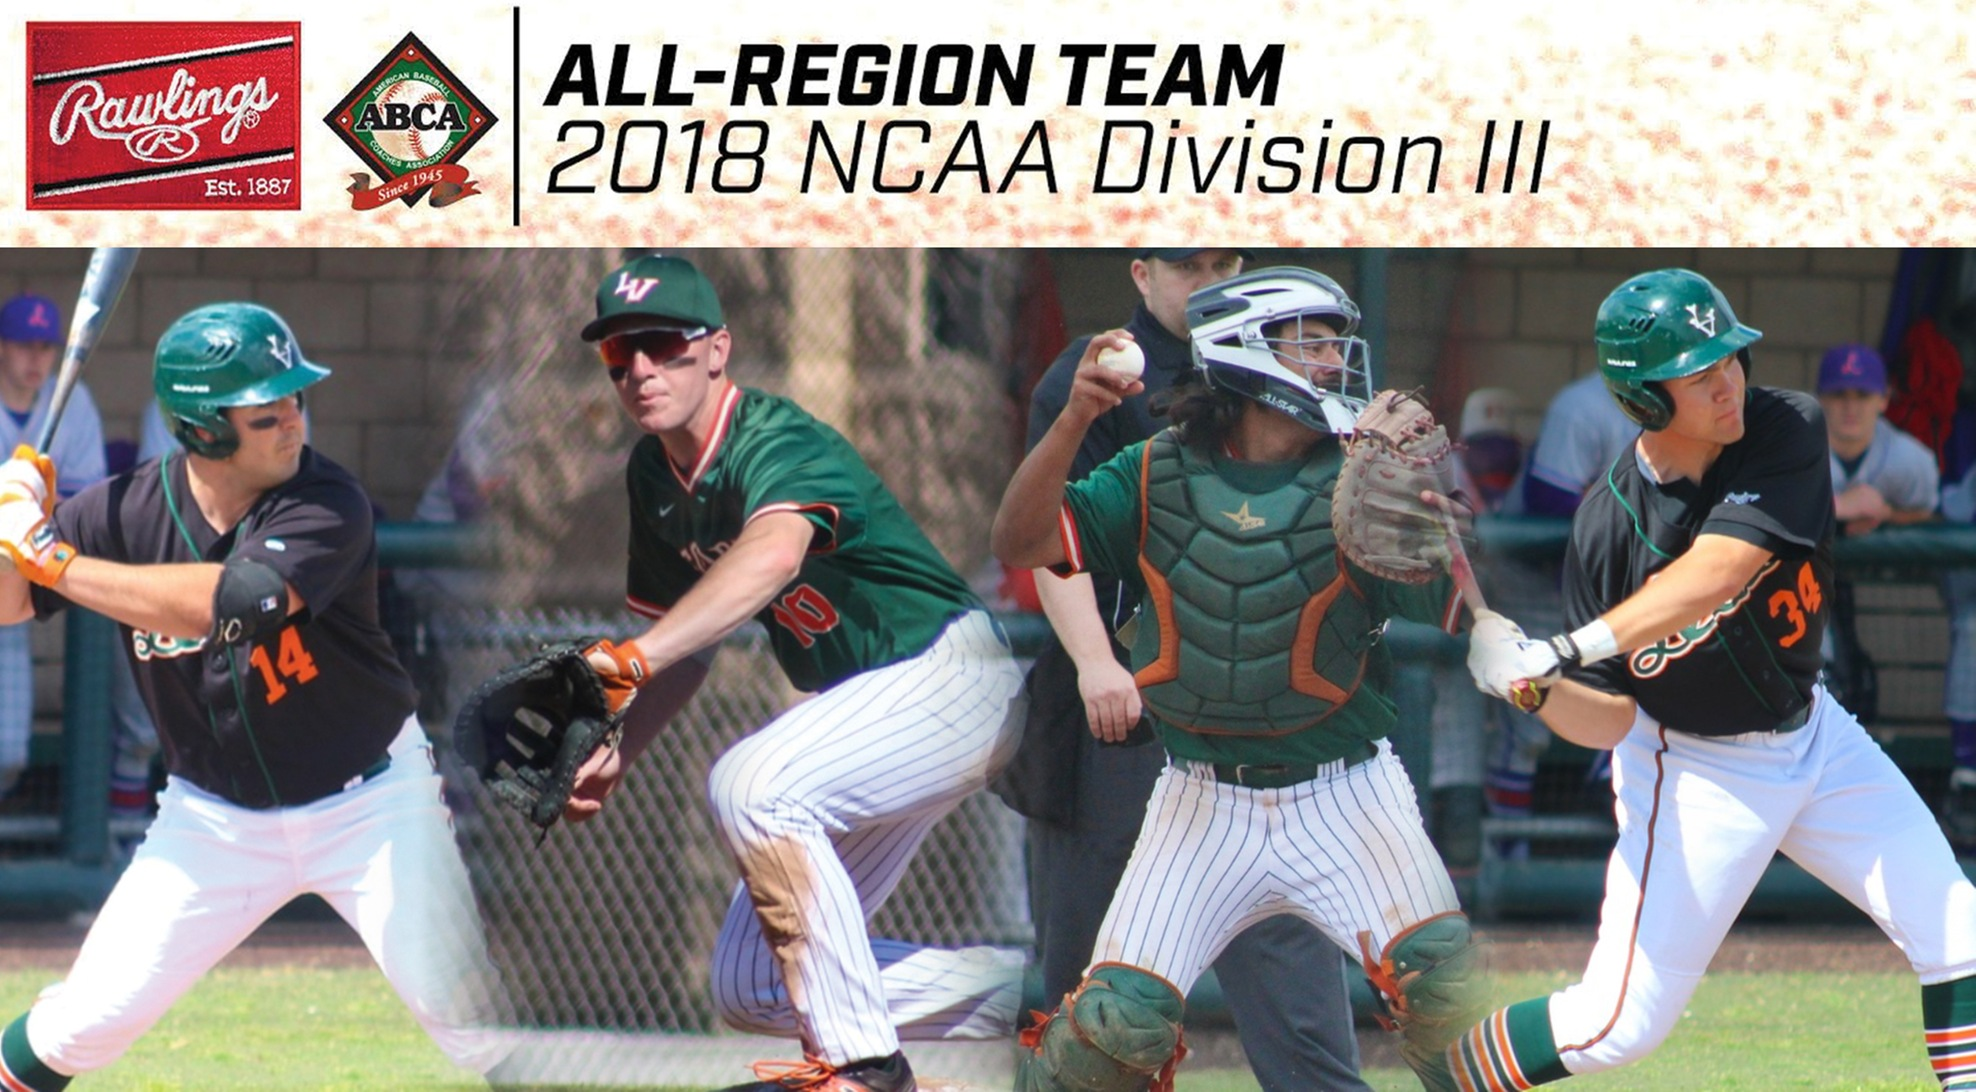 Thomas, Michaels, Santa Cruz, Peres named All-Region